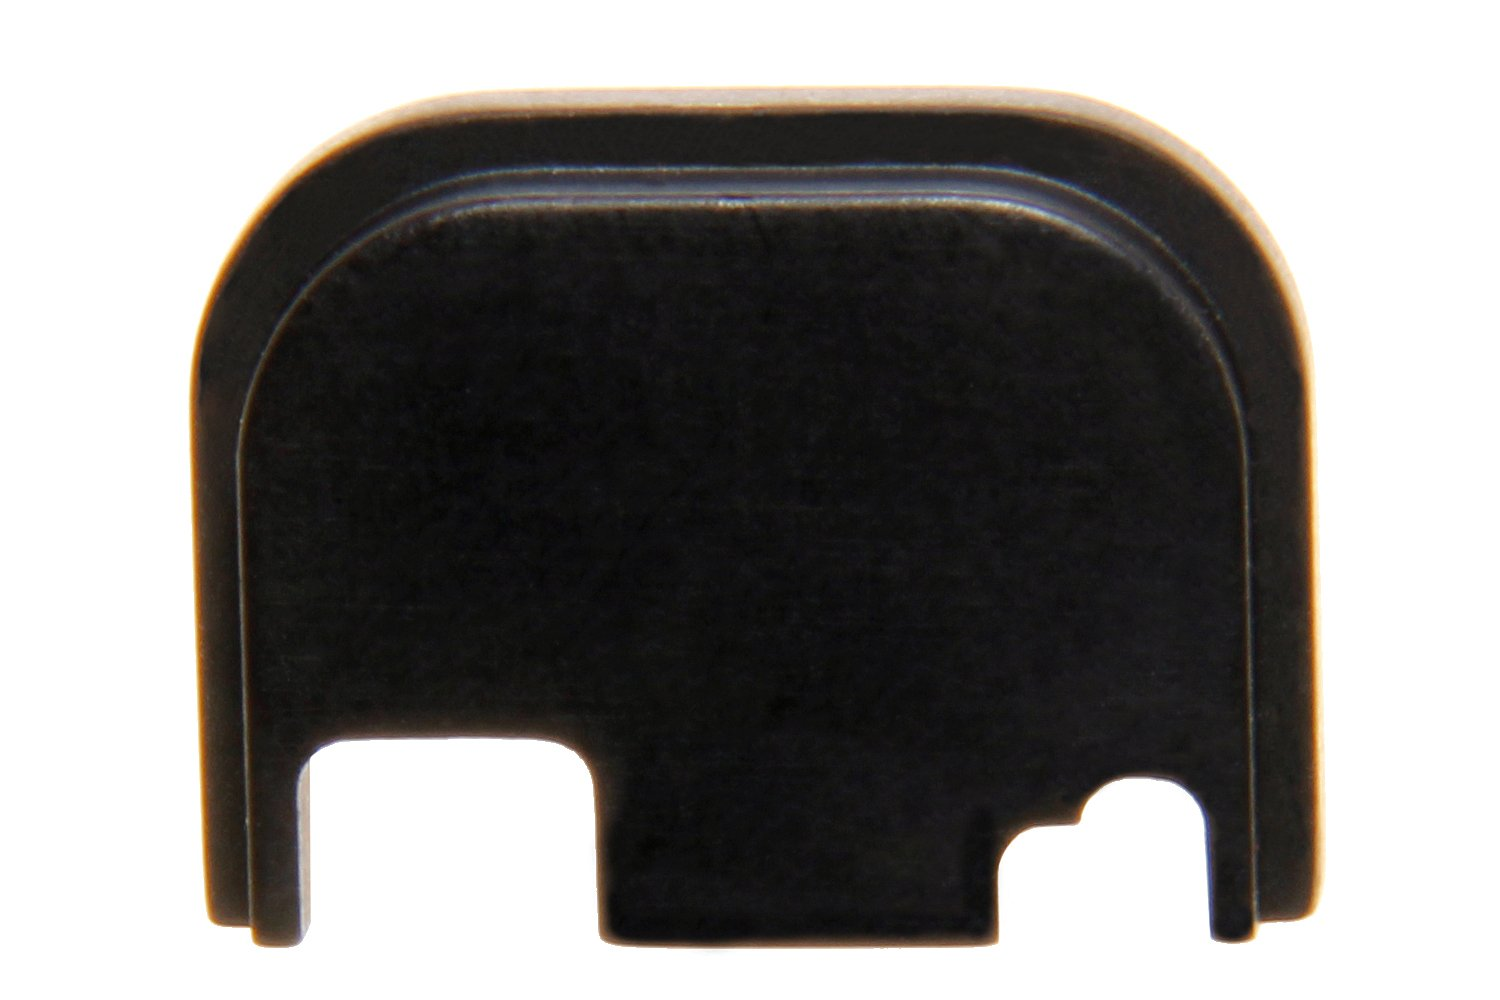 Hyve Technologies Slide Cover Plate for The Glock 43 with Logo